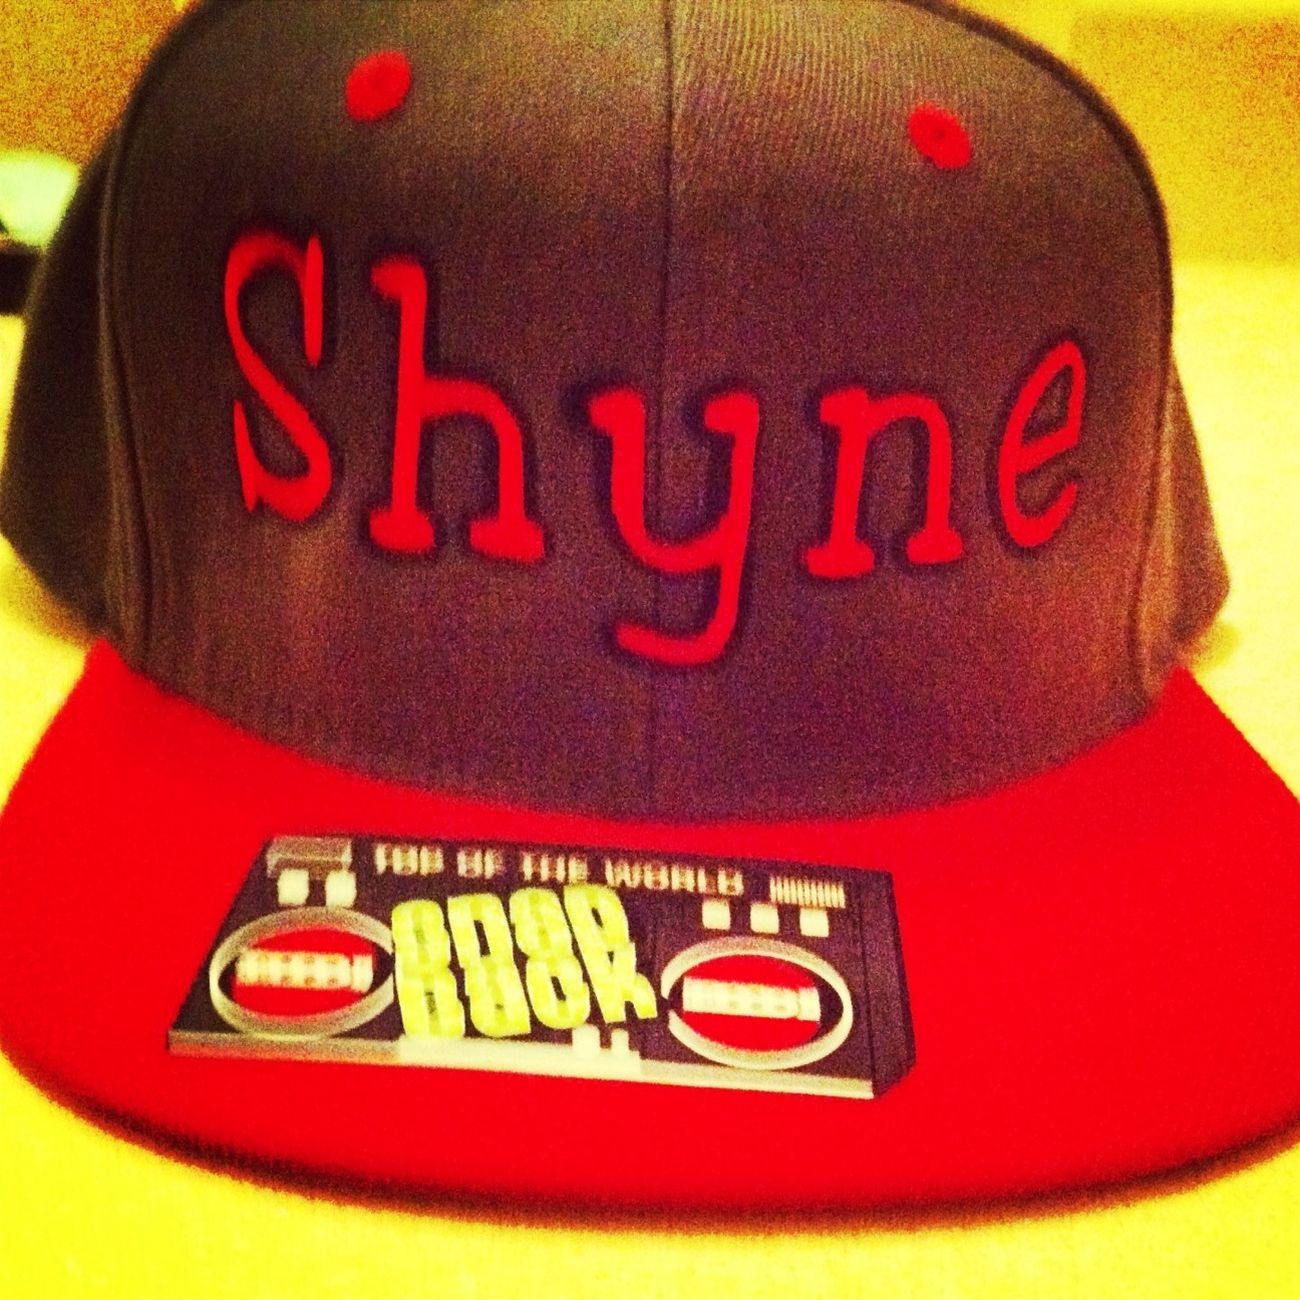 My Name On My Snapback